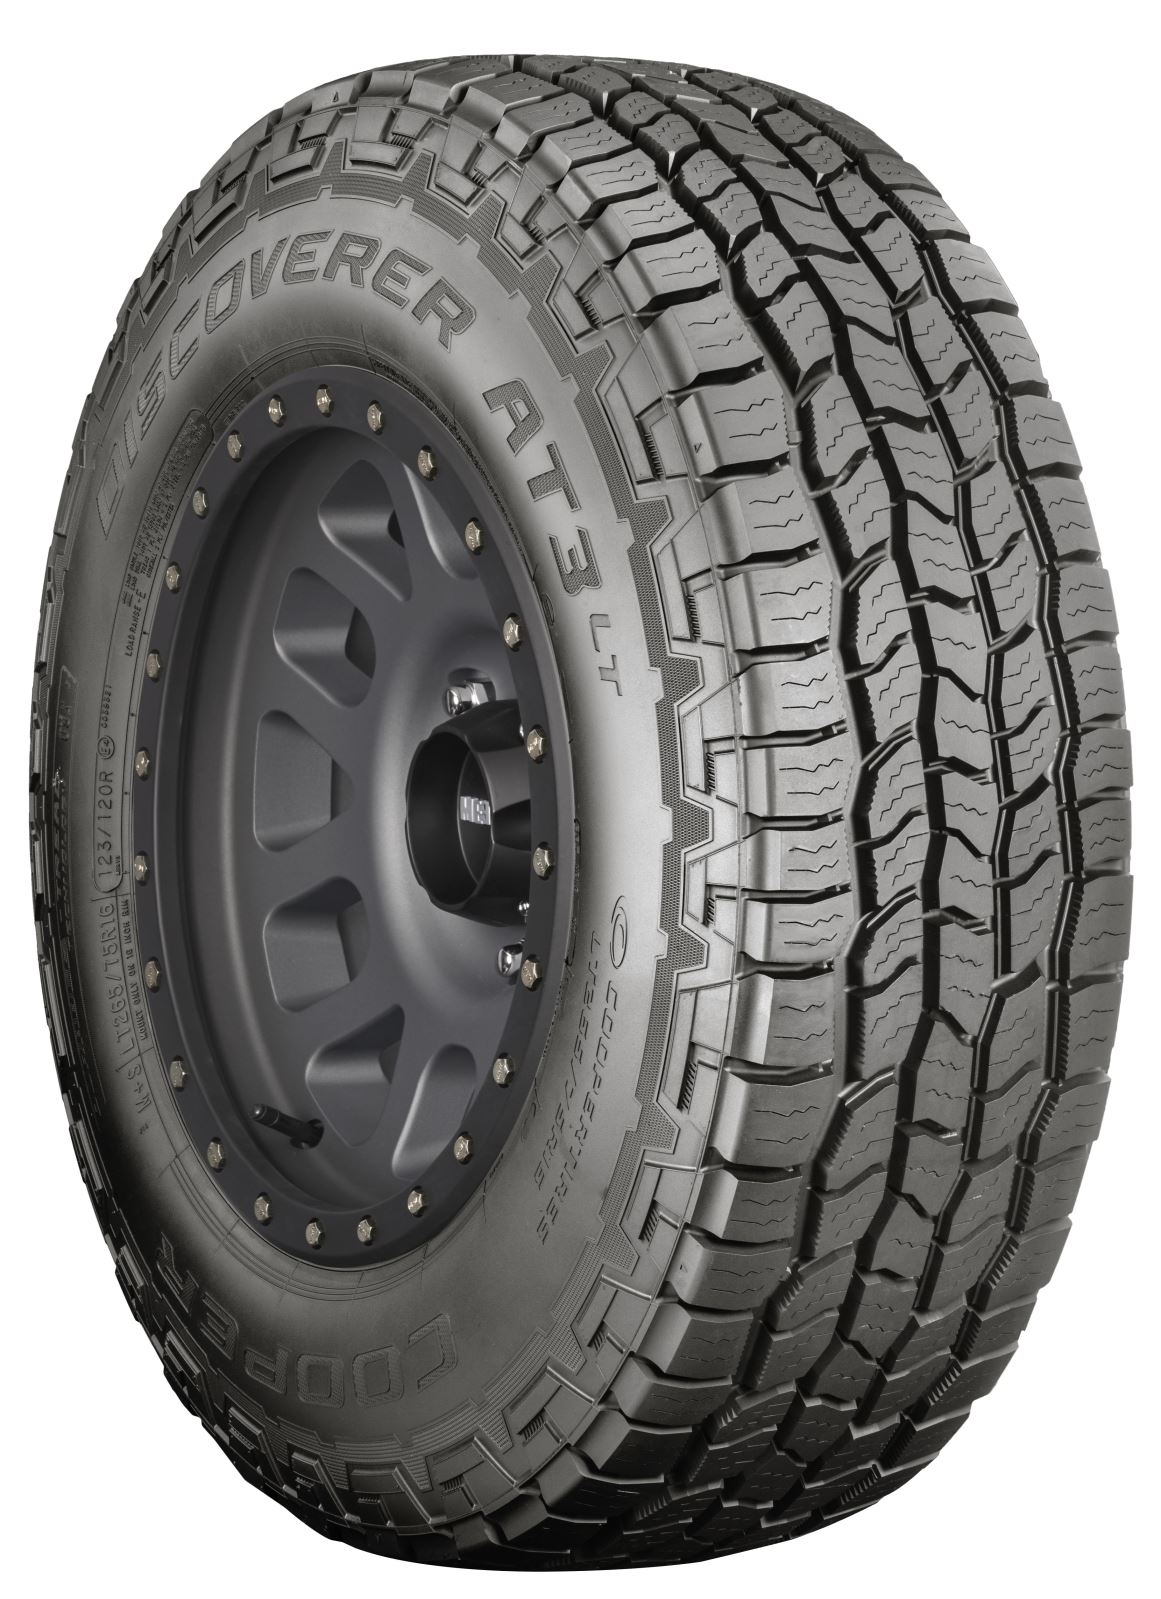 The New Discoverer At3lt And At3xlt Are Two Tires Introduced Under At3 Name To Expand Offering In Cooper